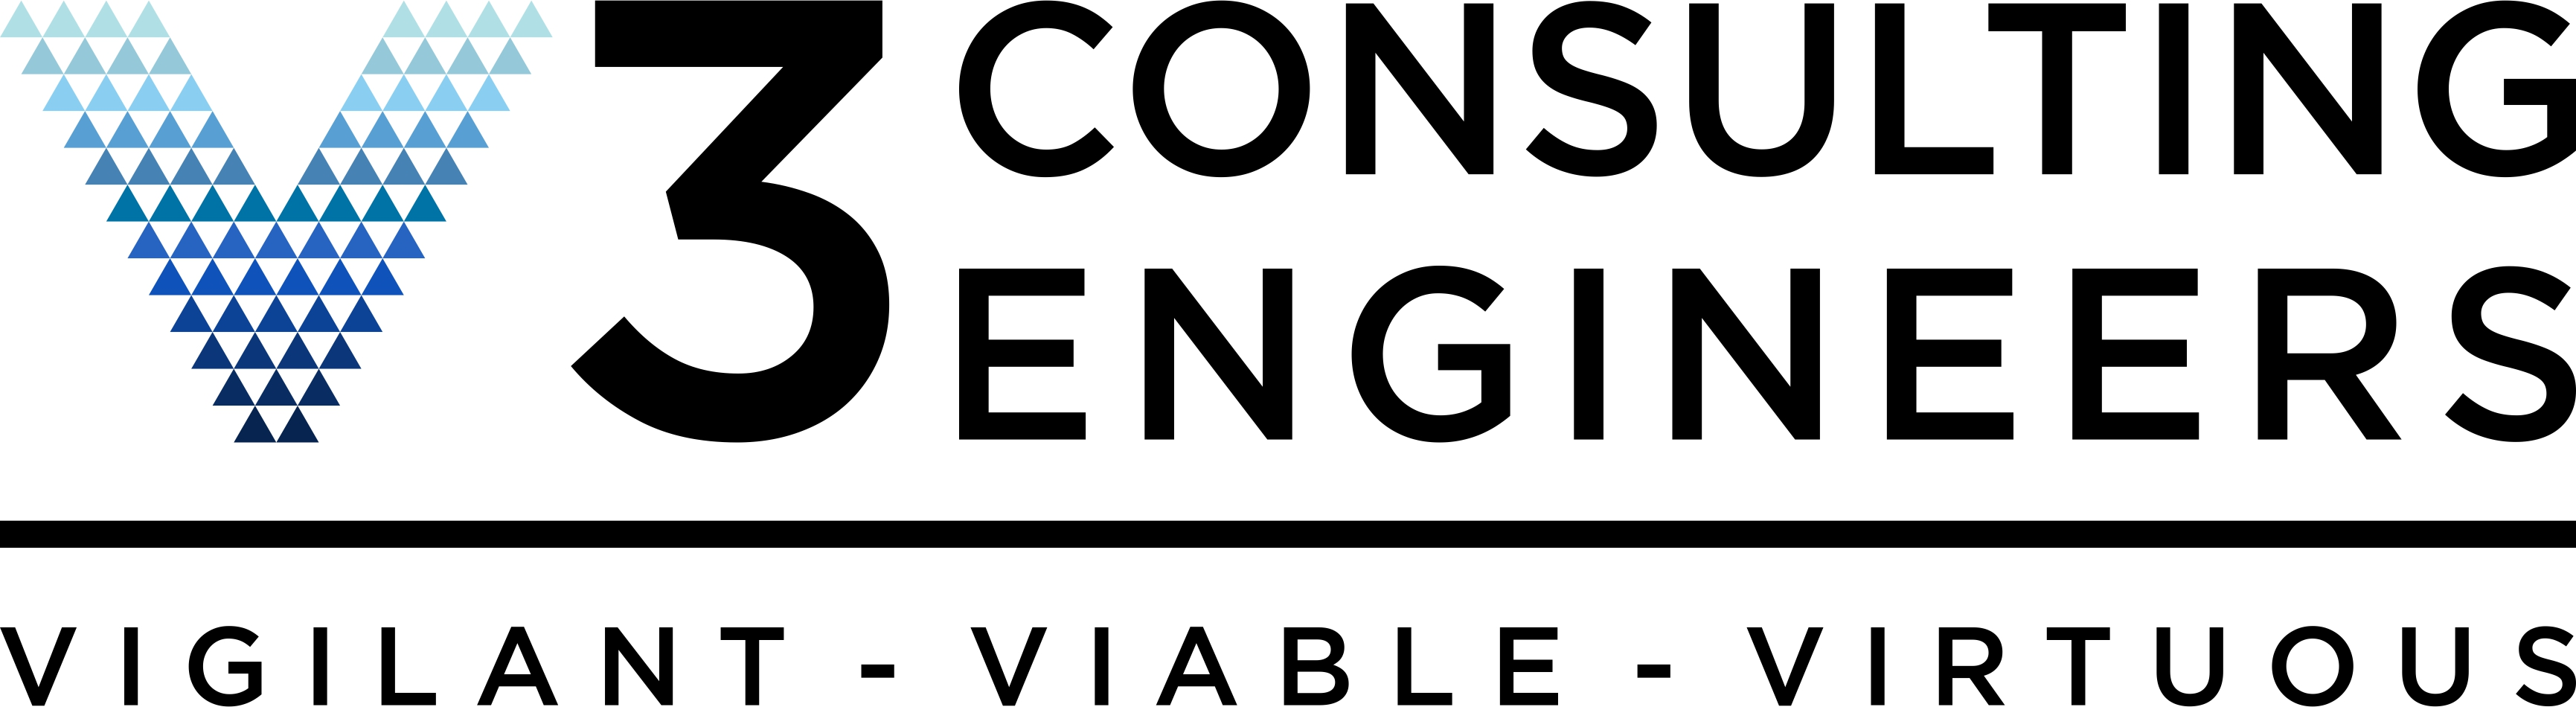 2021 Golf - V3 Consulting Engineers logo